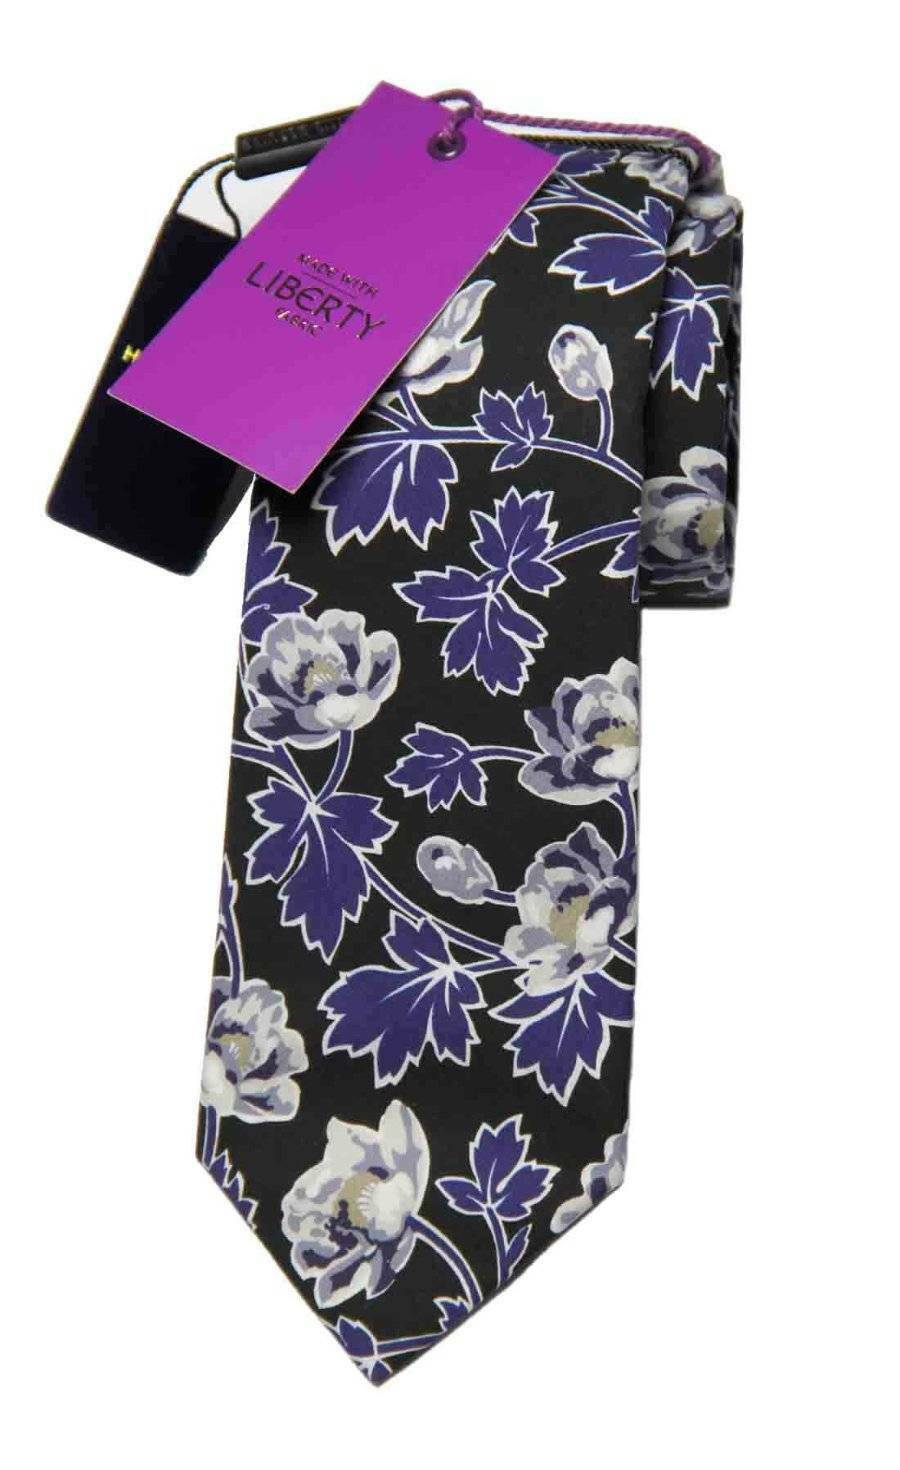 Holland Esquire Liberty of London Fabric Tie Cotton Floral Men's OS